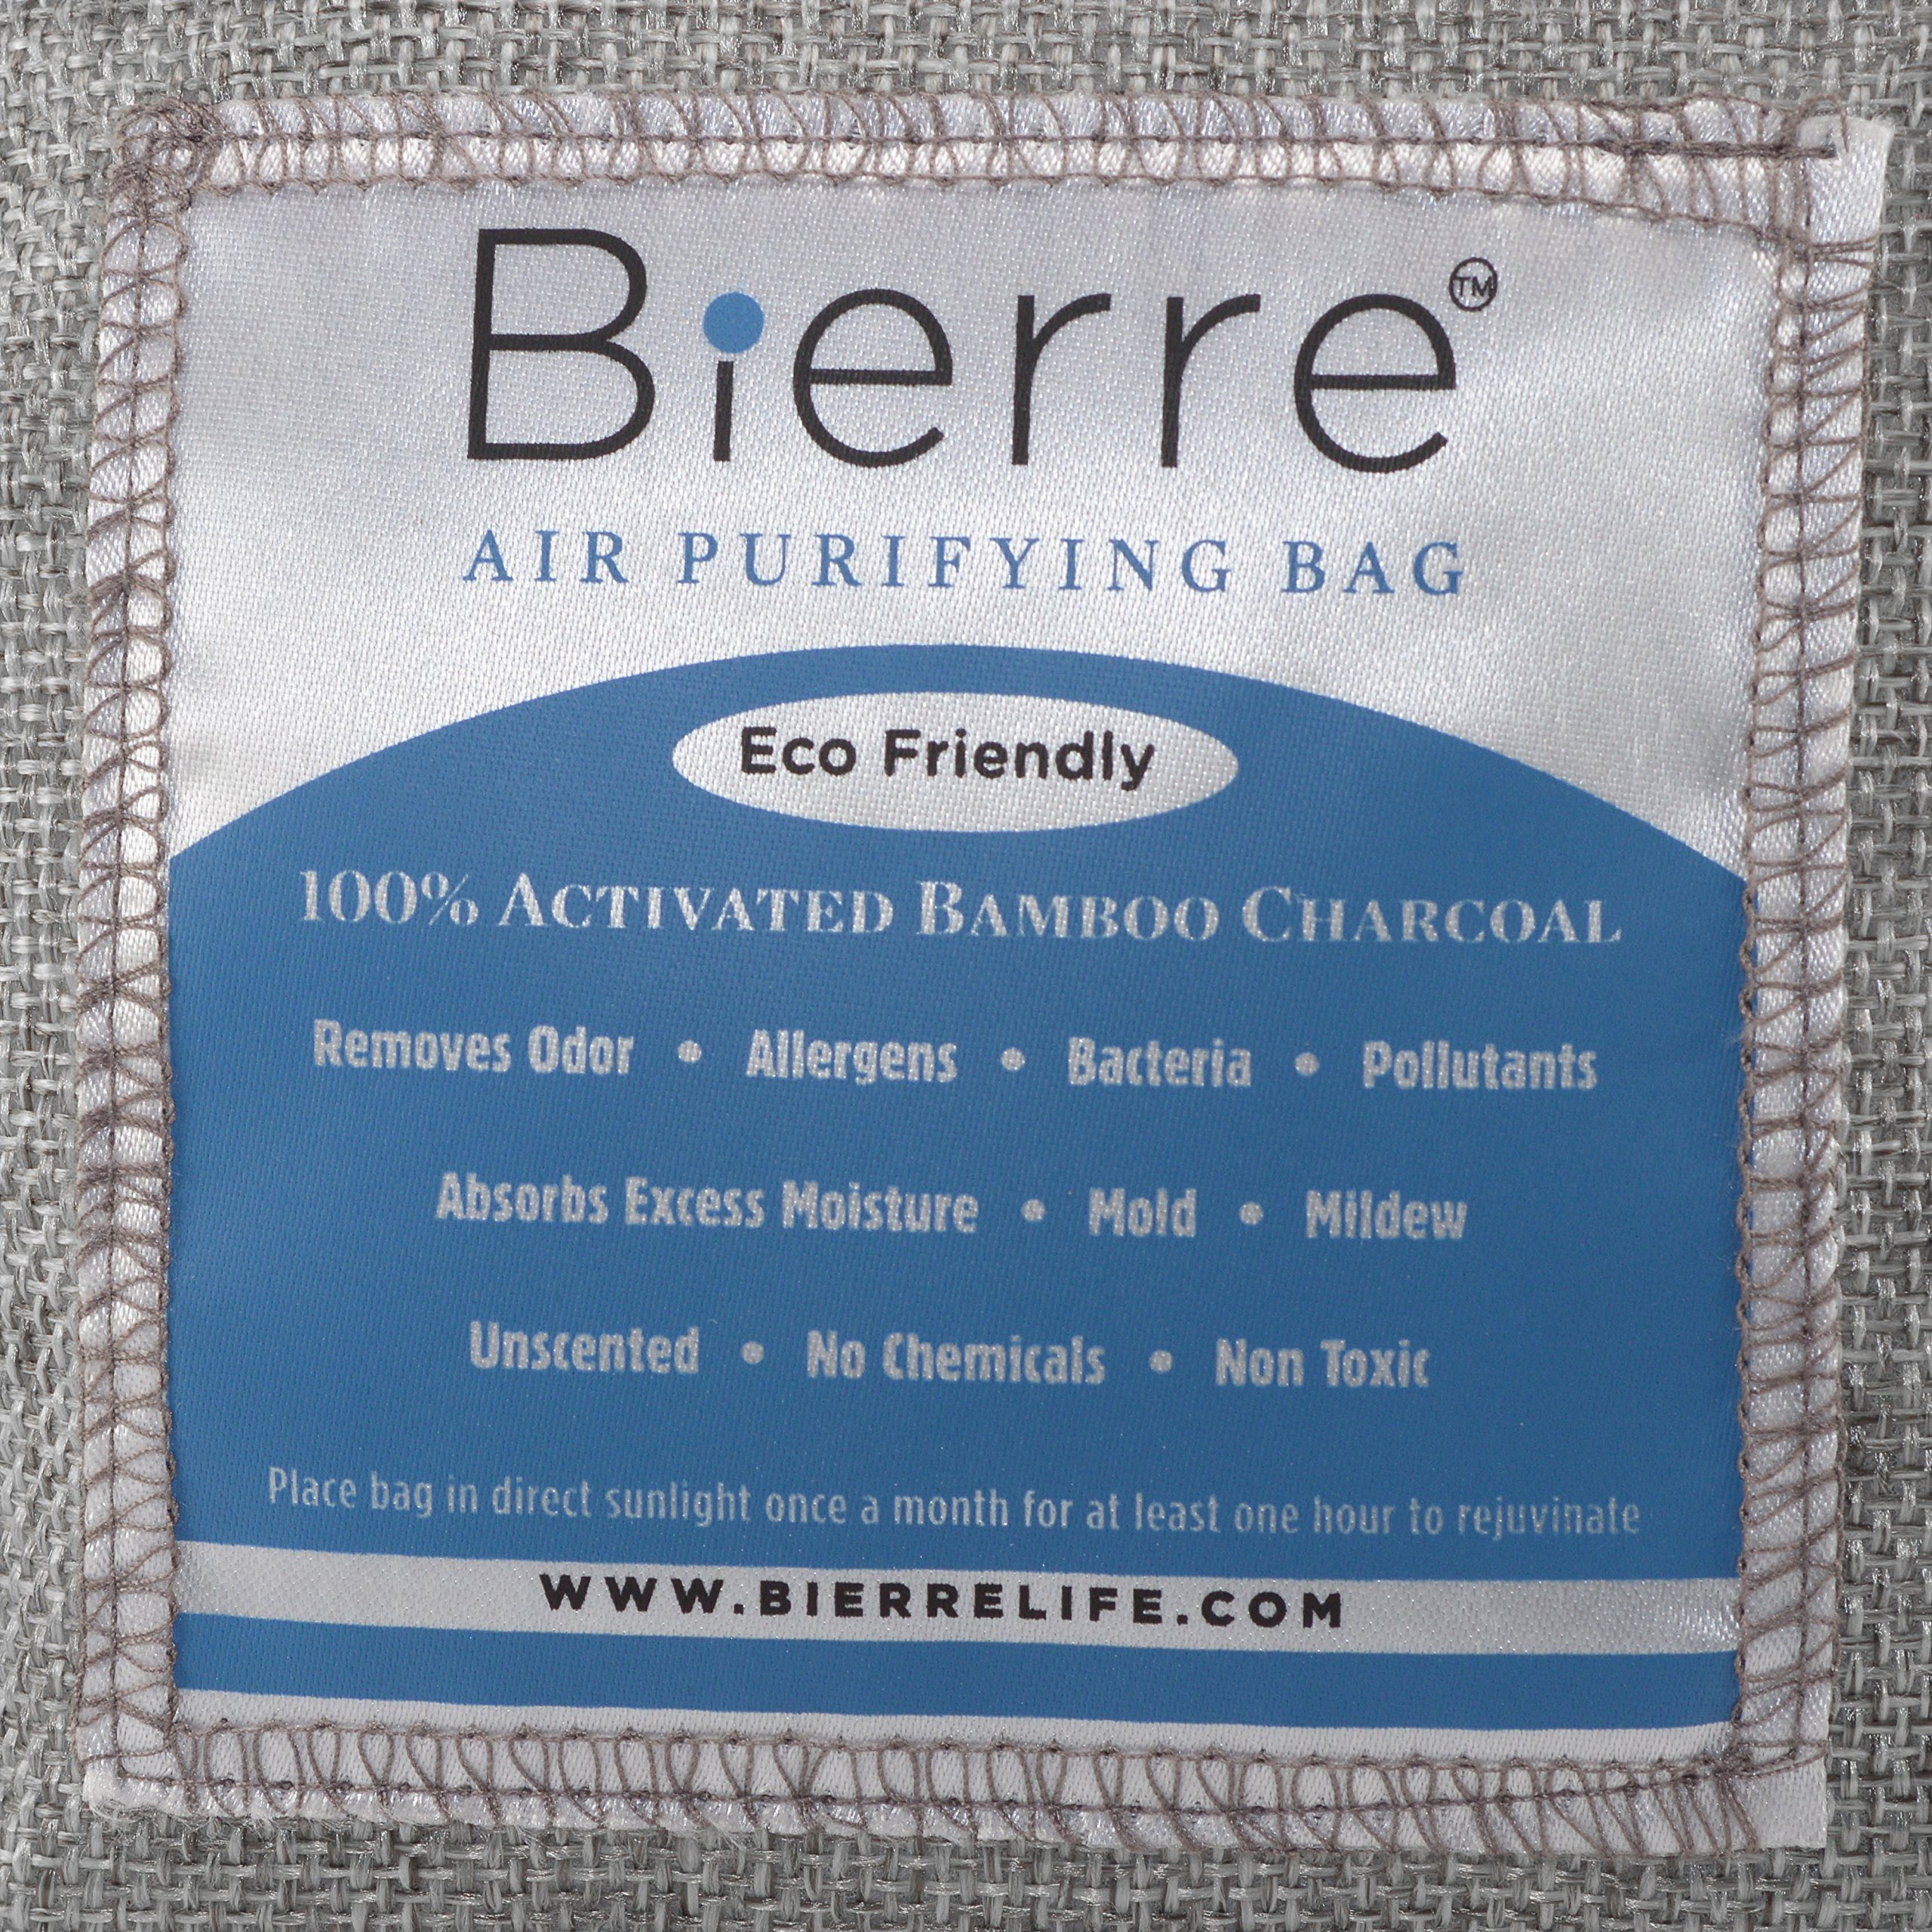 Bierre 4 Pack, 100% Bamboo Activated Charcoal Air Purifying Bags - Eco Friendly Natural Odor Remover - Unscented, Non Chemical - Removes Bacteria, Allergens, Pollutants, Absorbs Moisture, Mold, Mildew by Bierre (Image #4)